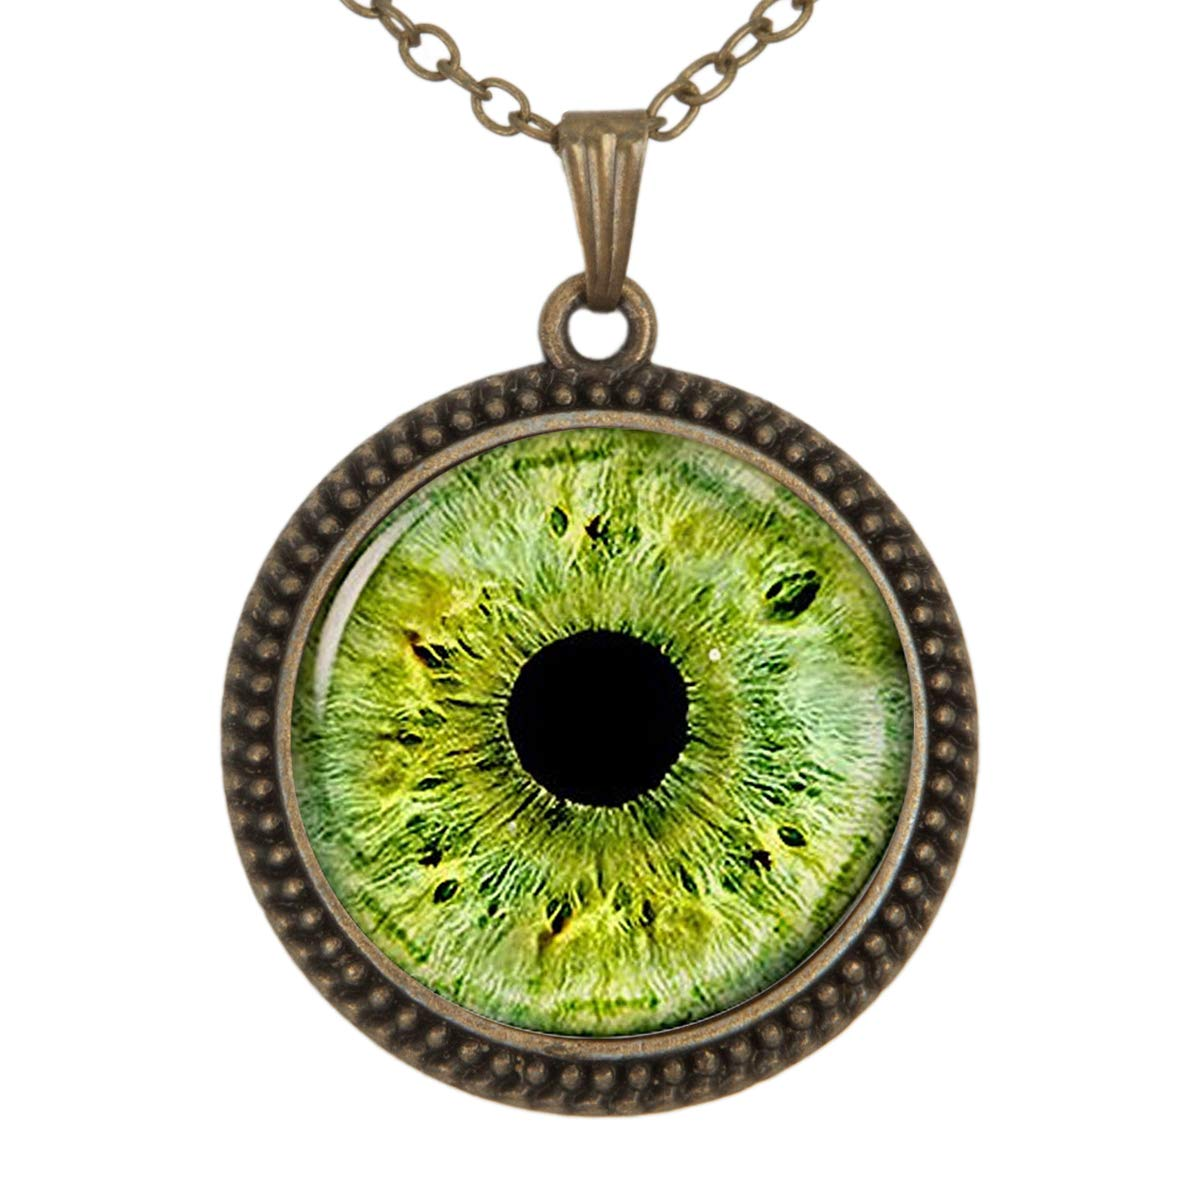 Lightrain Green Eyes Pendant Necklace Vintage Bronze Chain Statement Necklace Handmade Jewelry Gifts